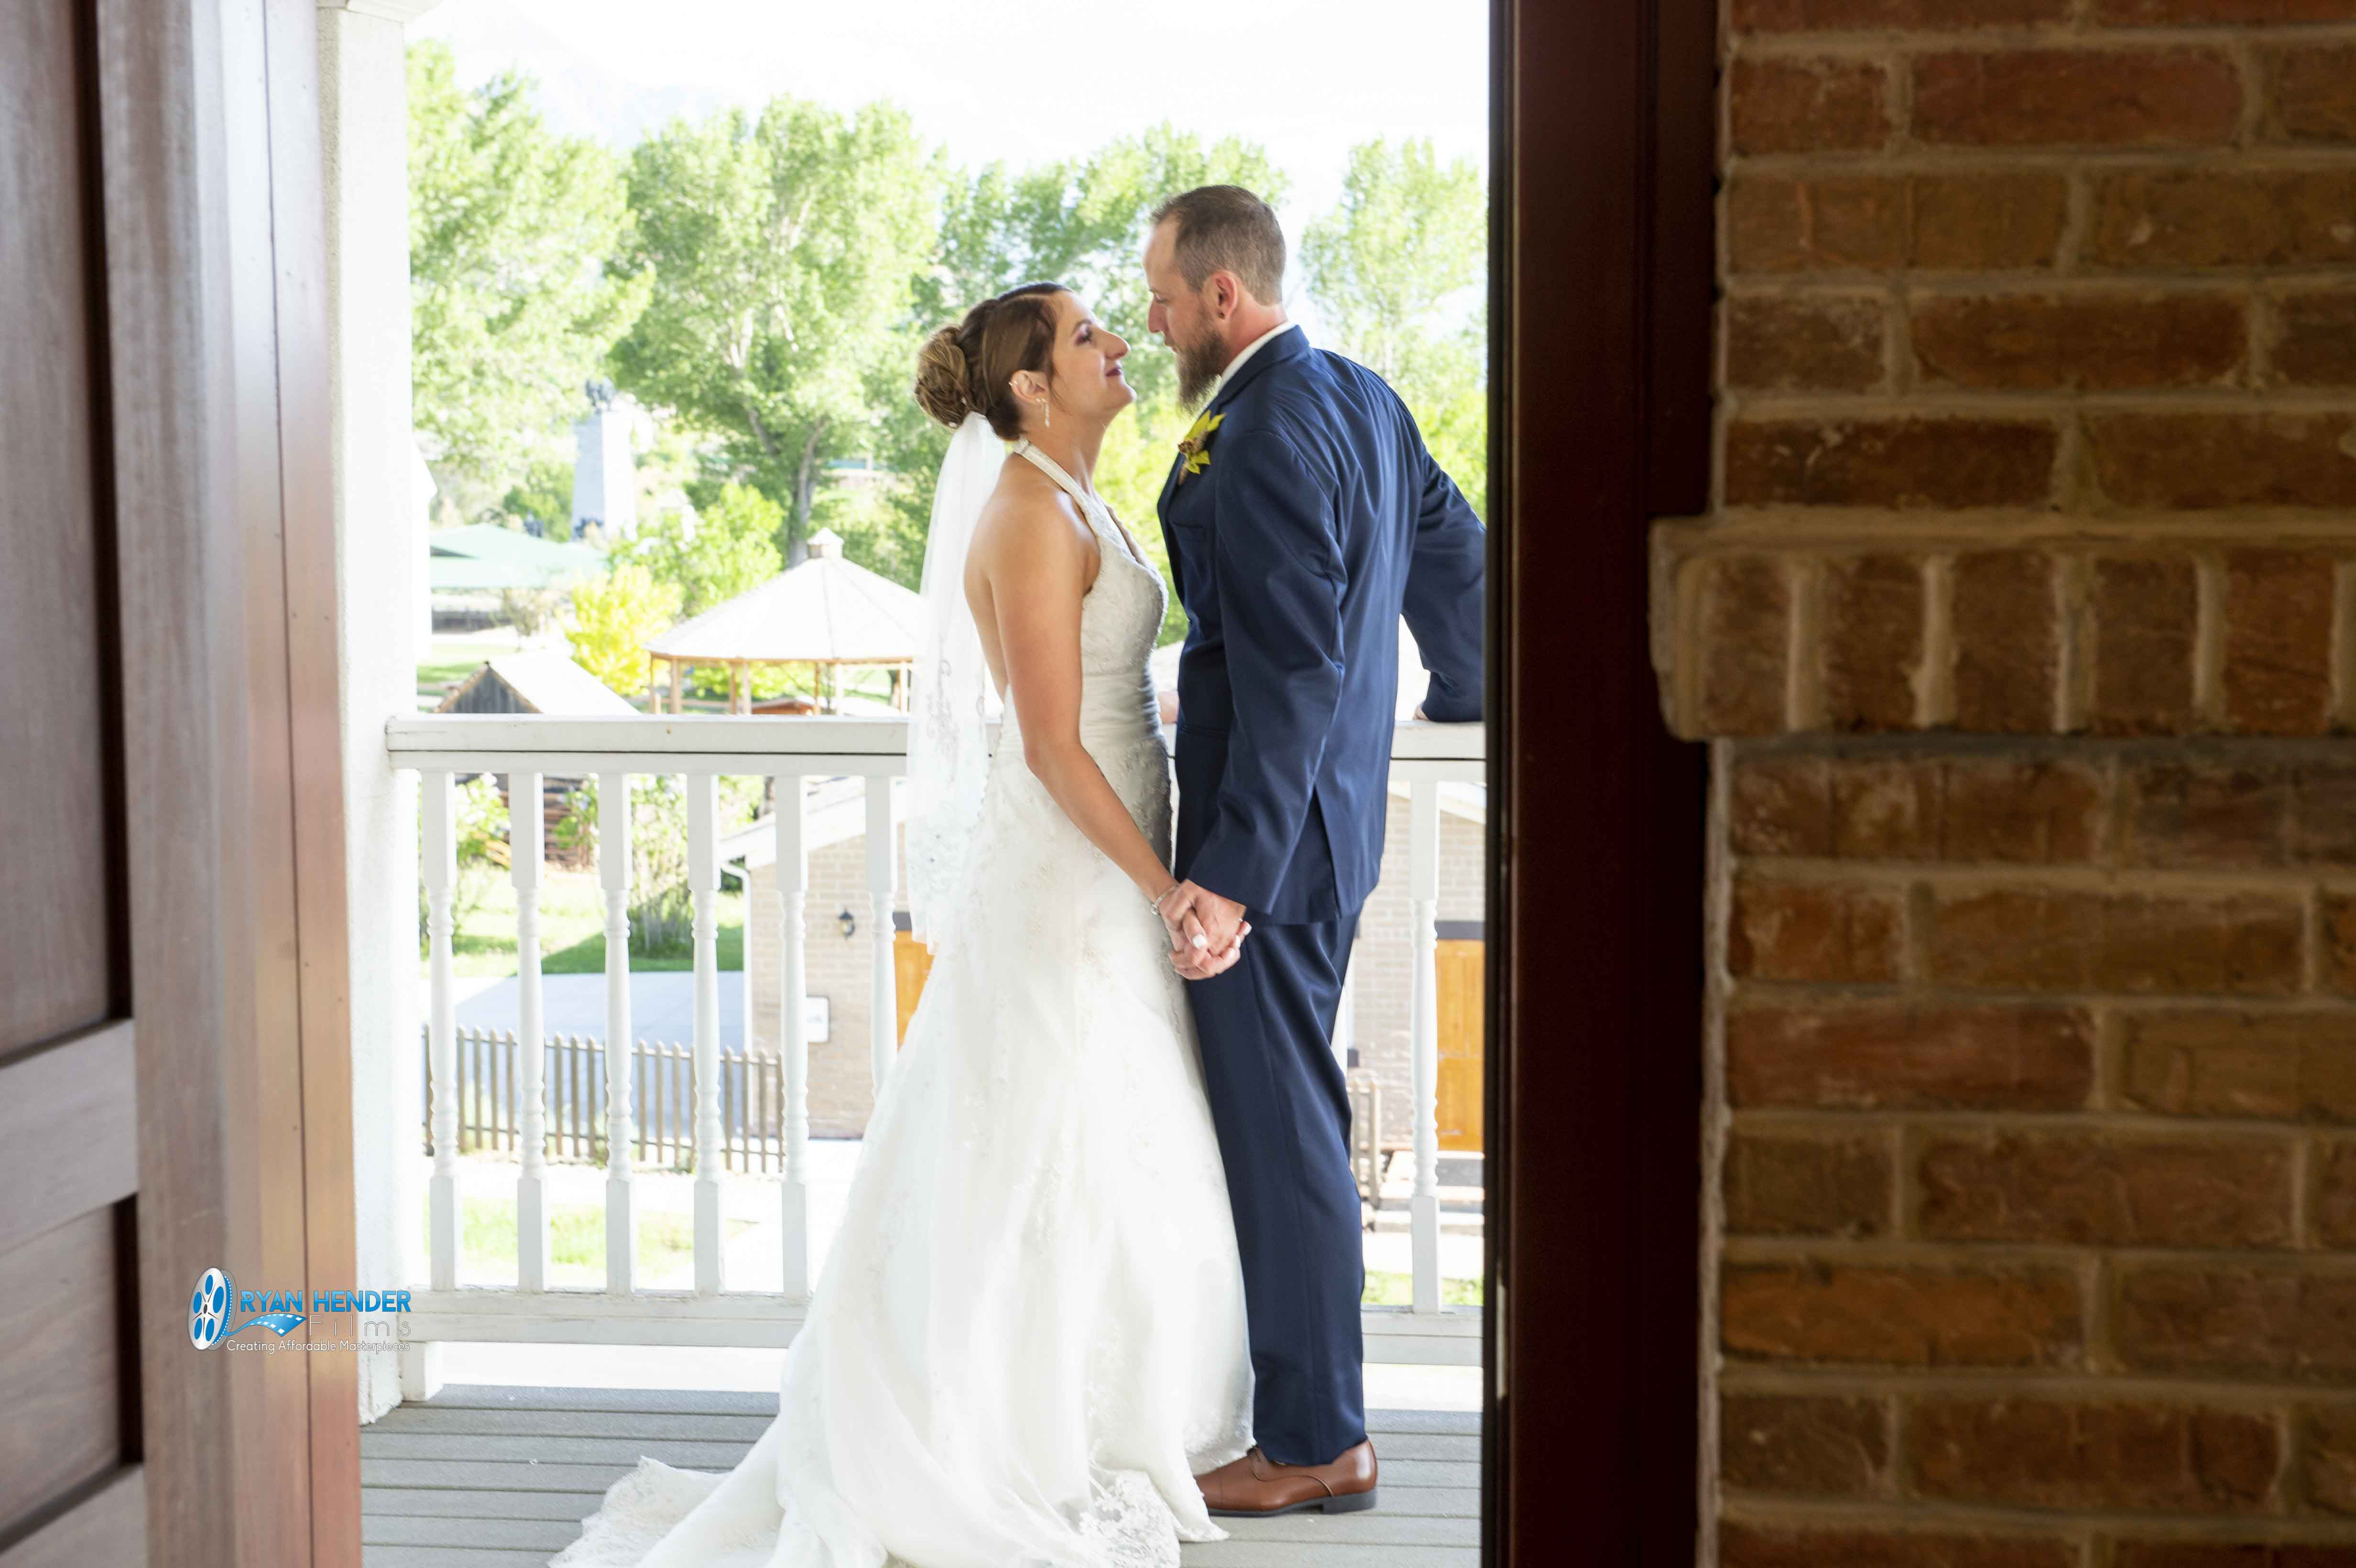 This Is The Place Heritage Park Wedding Photography | Sailor + Ned